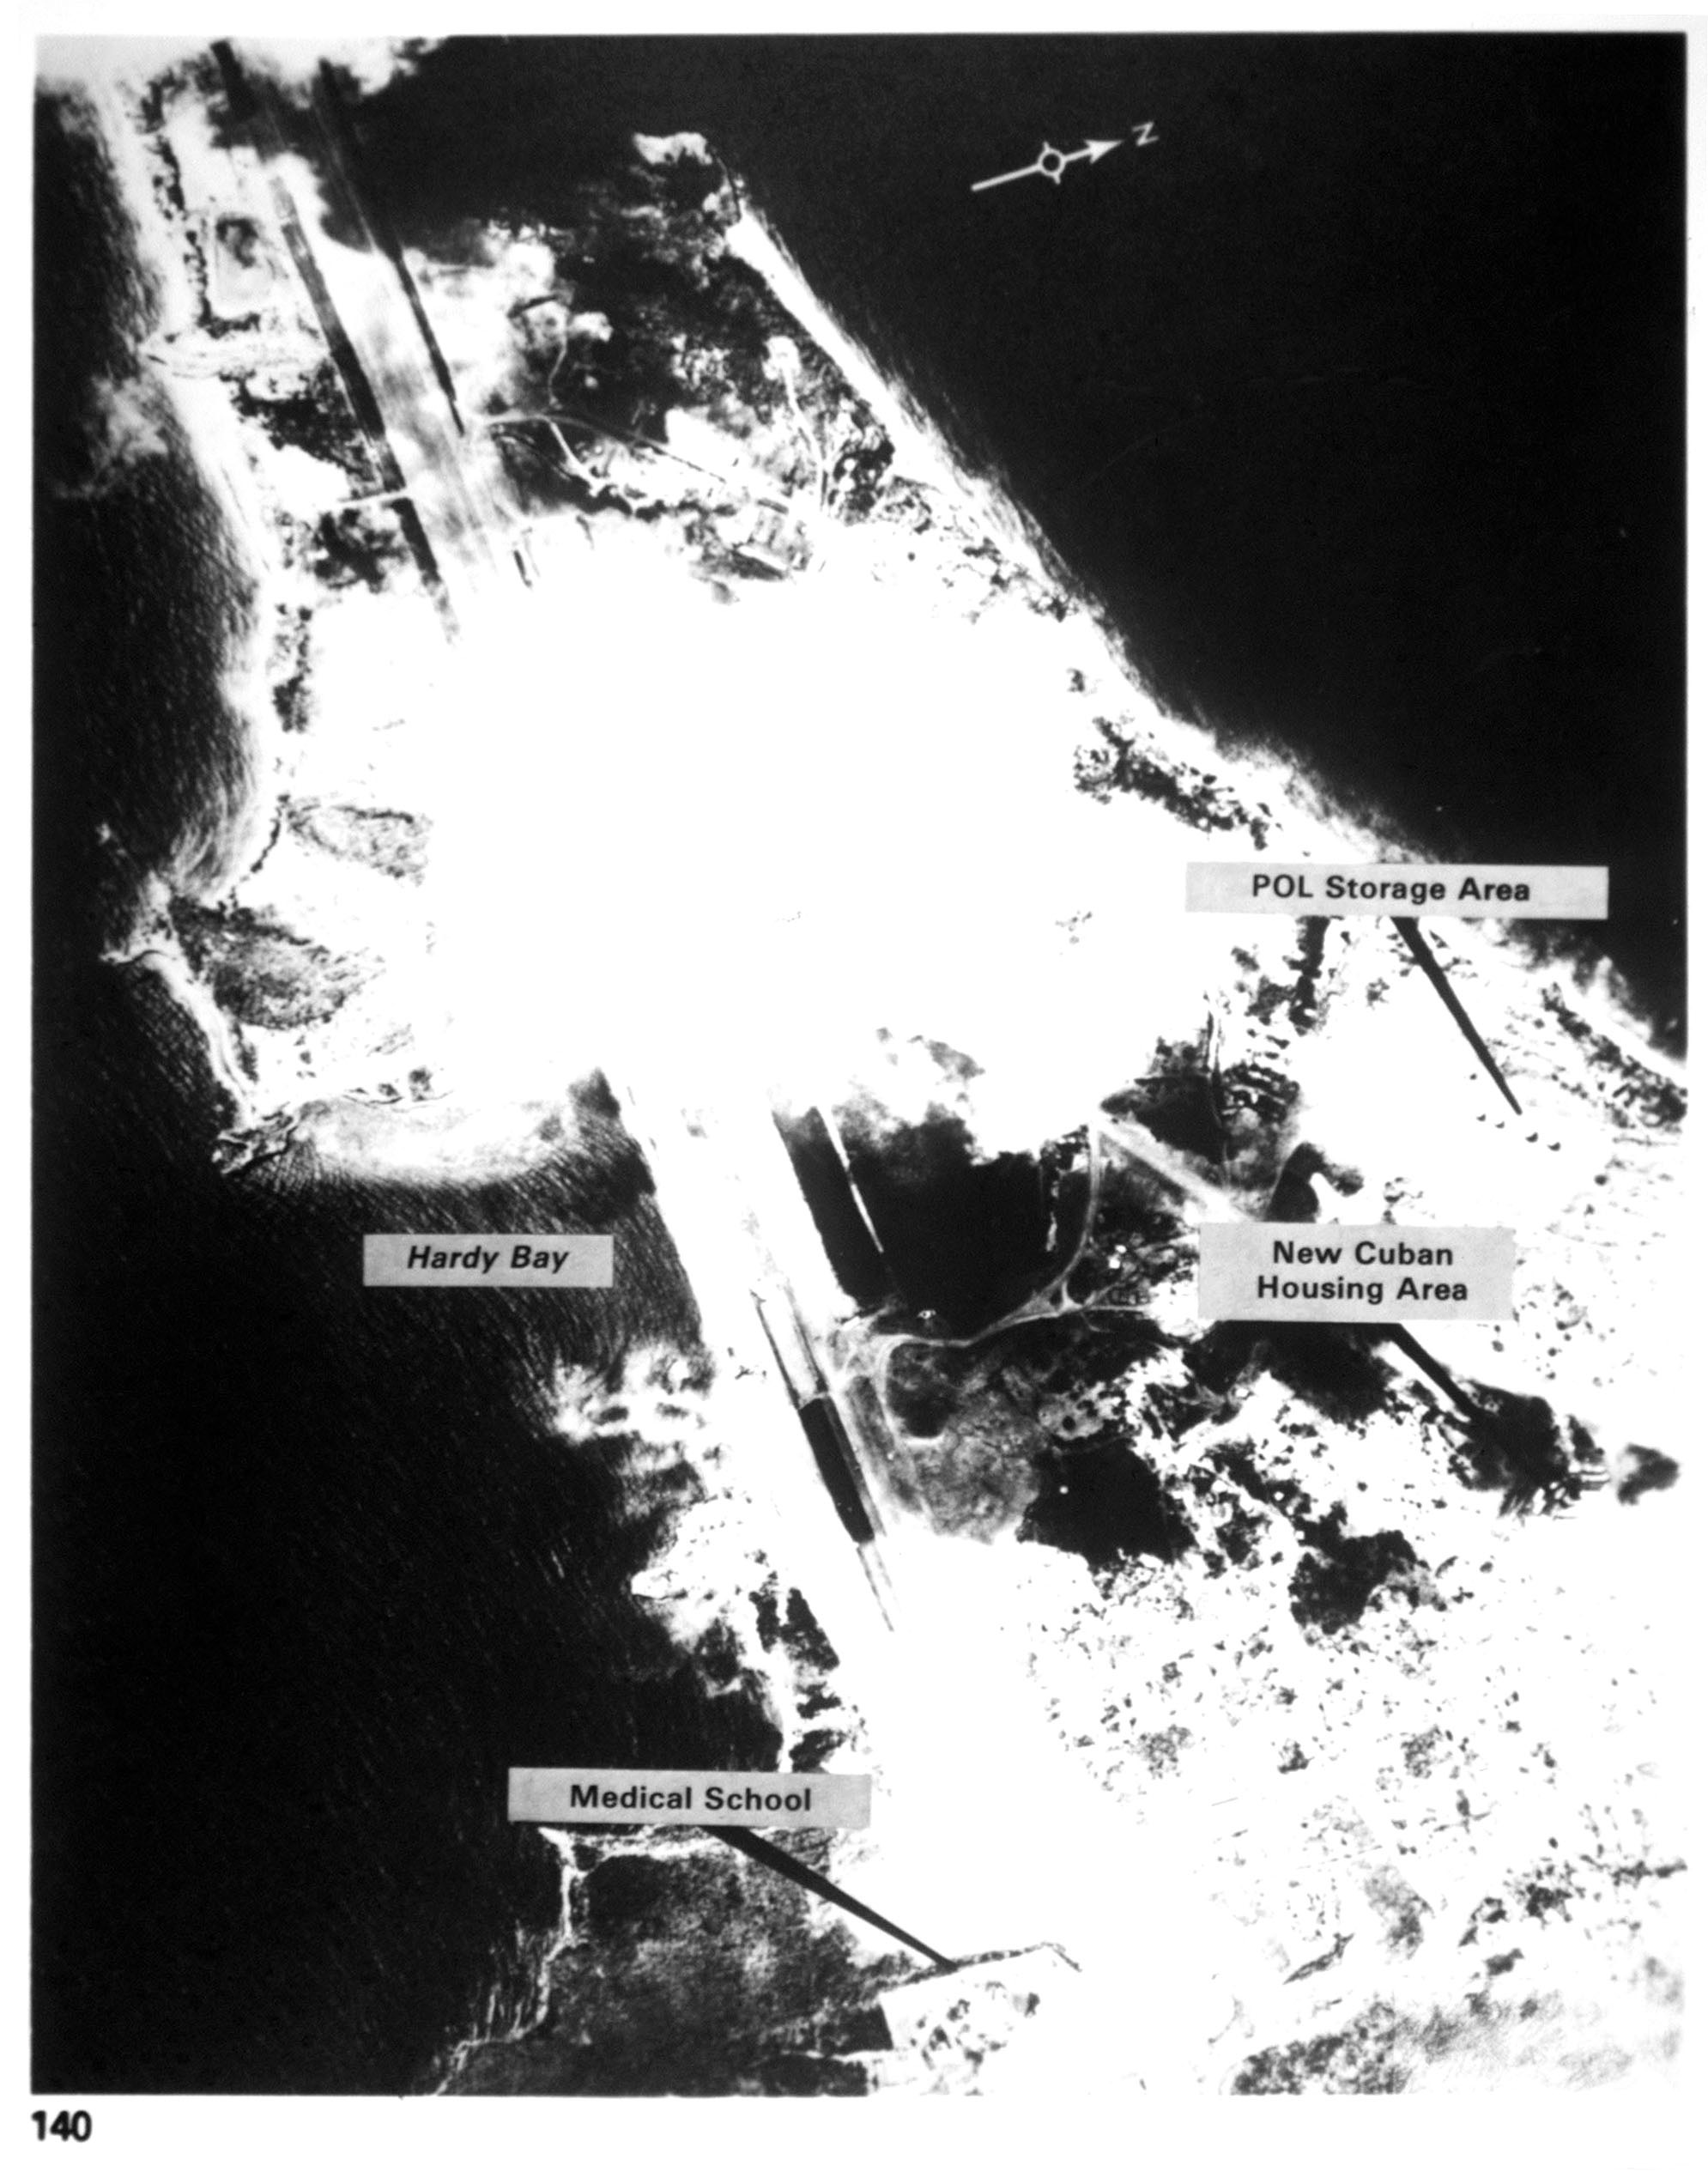 Point Salines Airfield, Grenada. Courtesy of Soviet Military Power, 1984. PHOTO No. 140, page 129